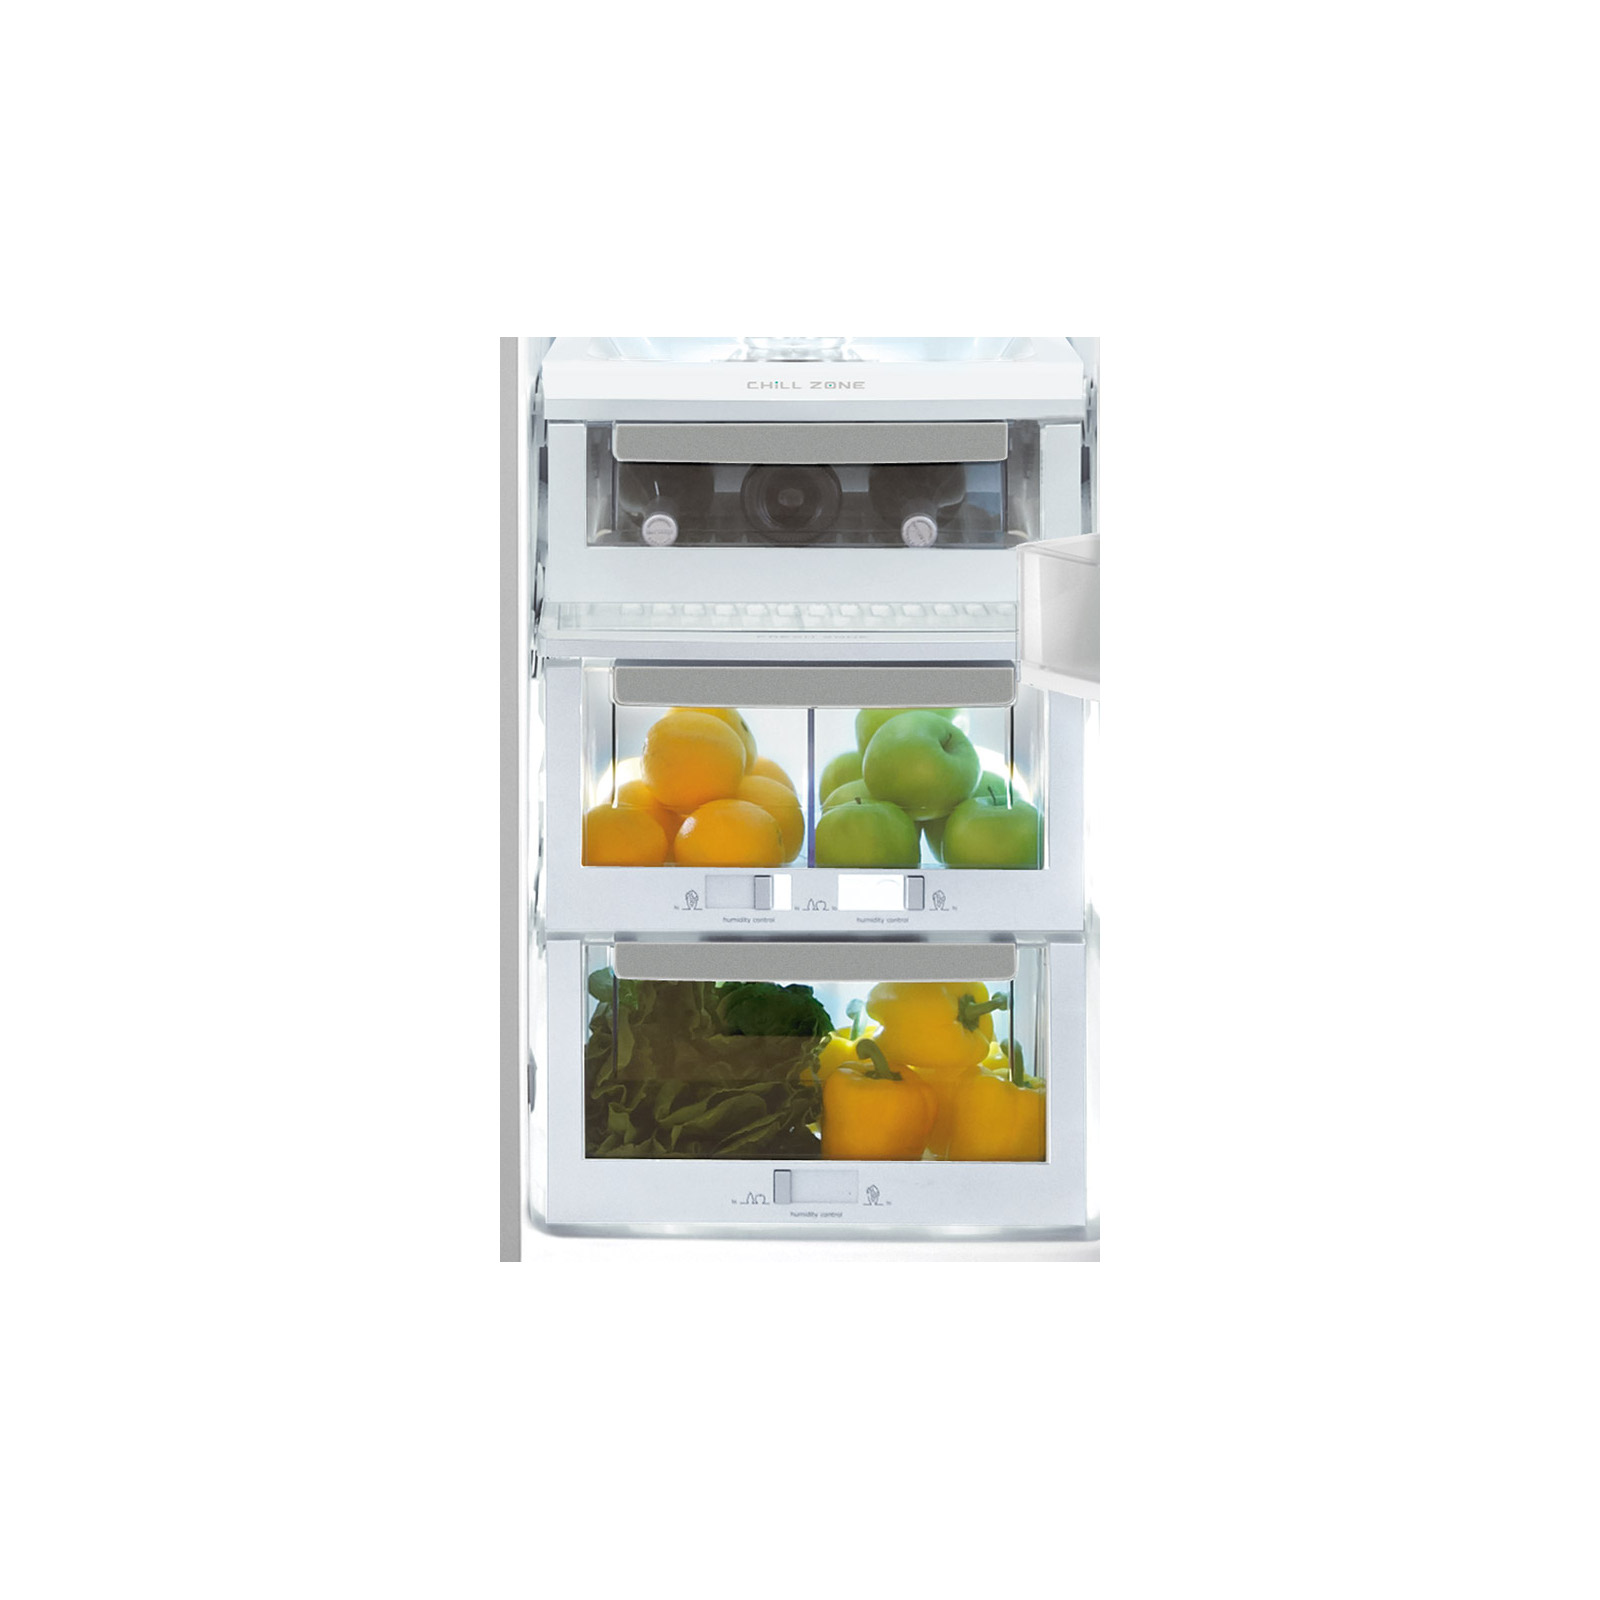 Electrolux EI23CS65KS 22.7 cu. ft. Counter-Depth Side-by-Side Refrigerator - Stainless Steel